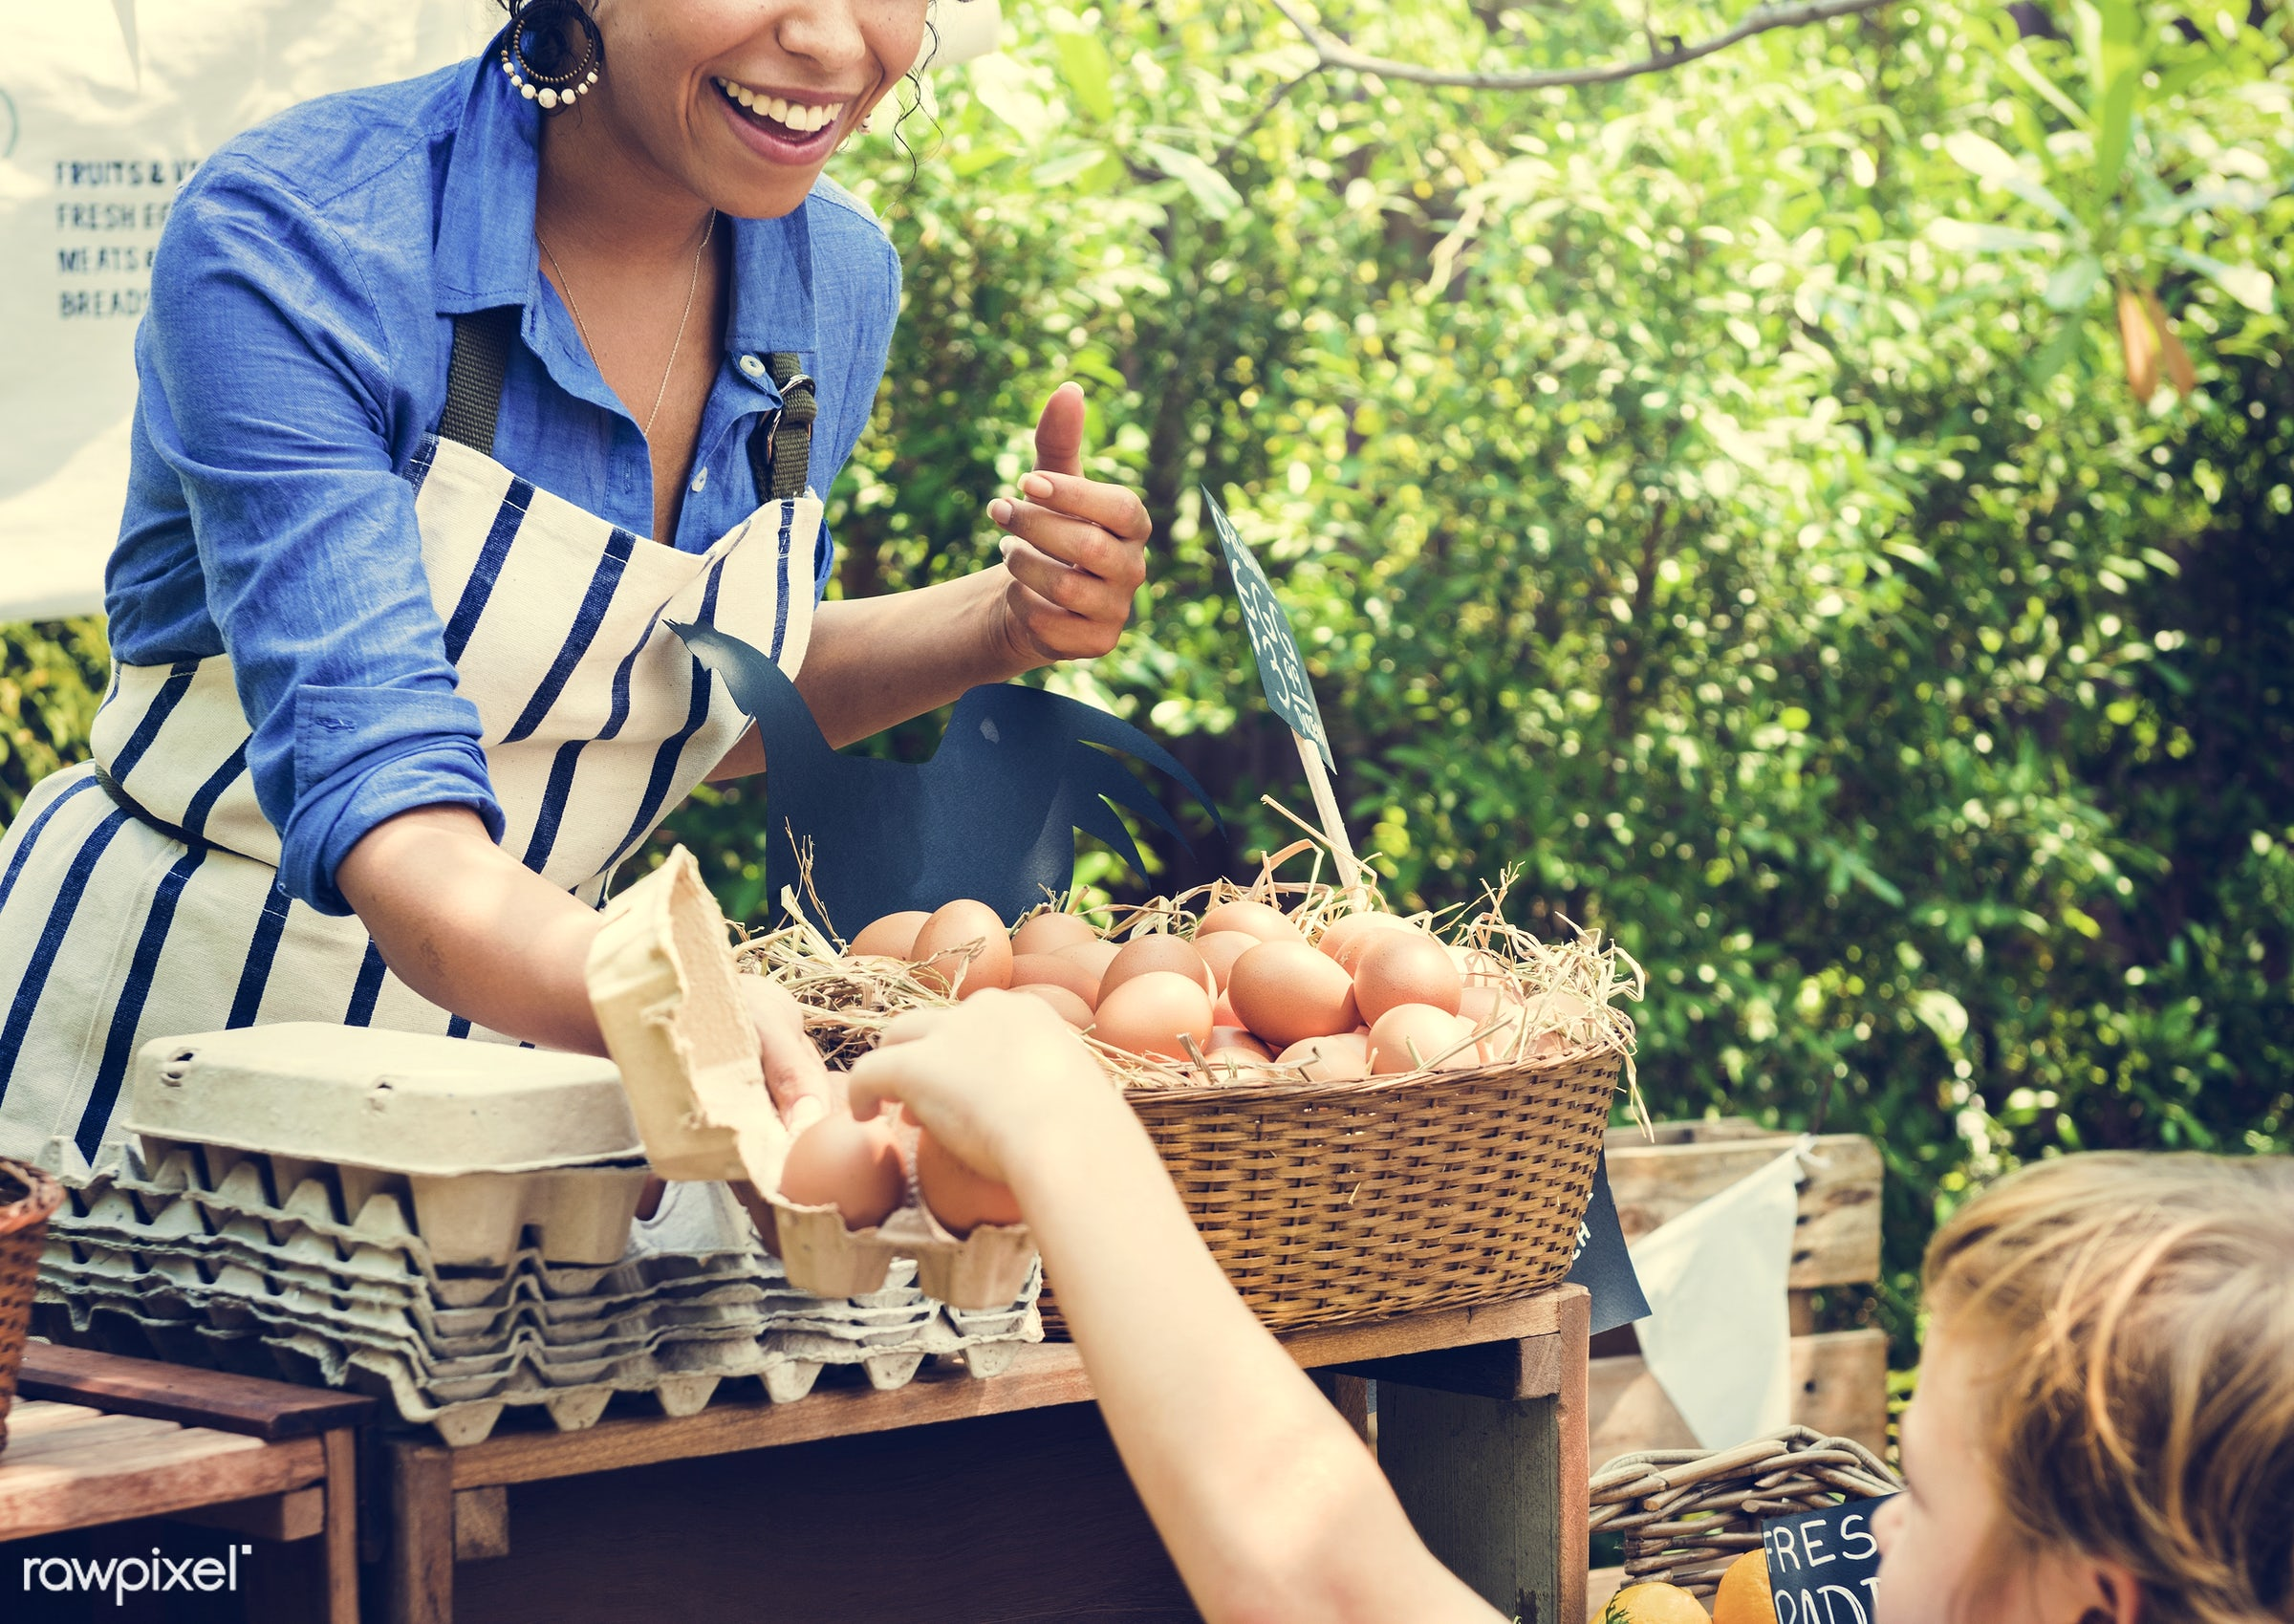 grocery, shop, nutritious, store, egg, farmer, fresh, woman, healthy eating, marketplace, cheerful, smiling, fruit, selling...